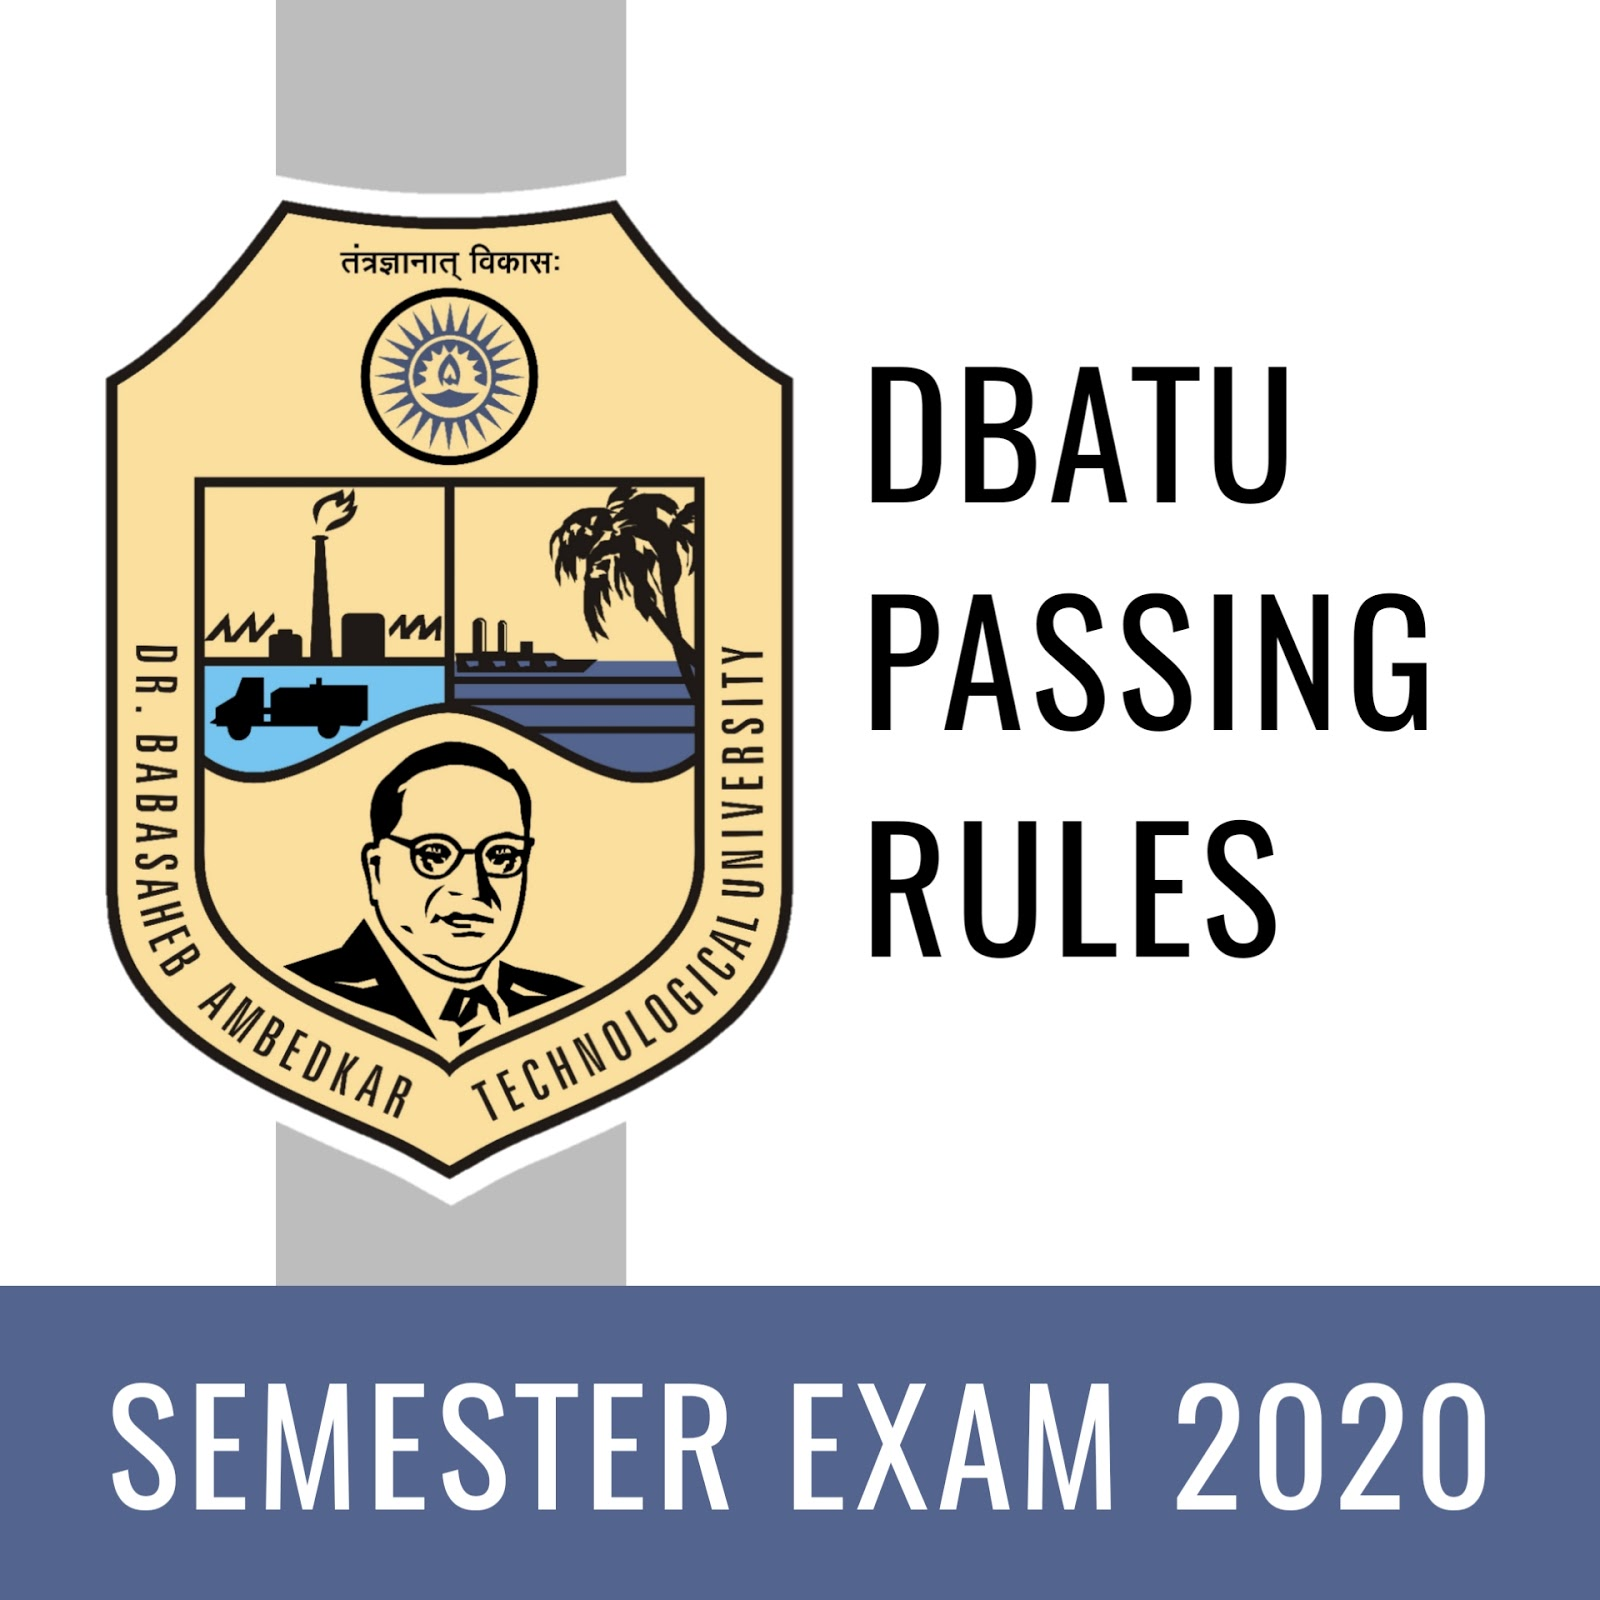 Batu passing rule and carry on